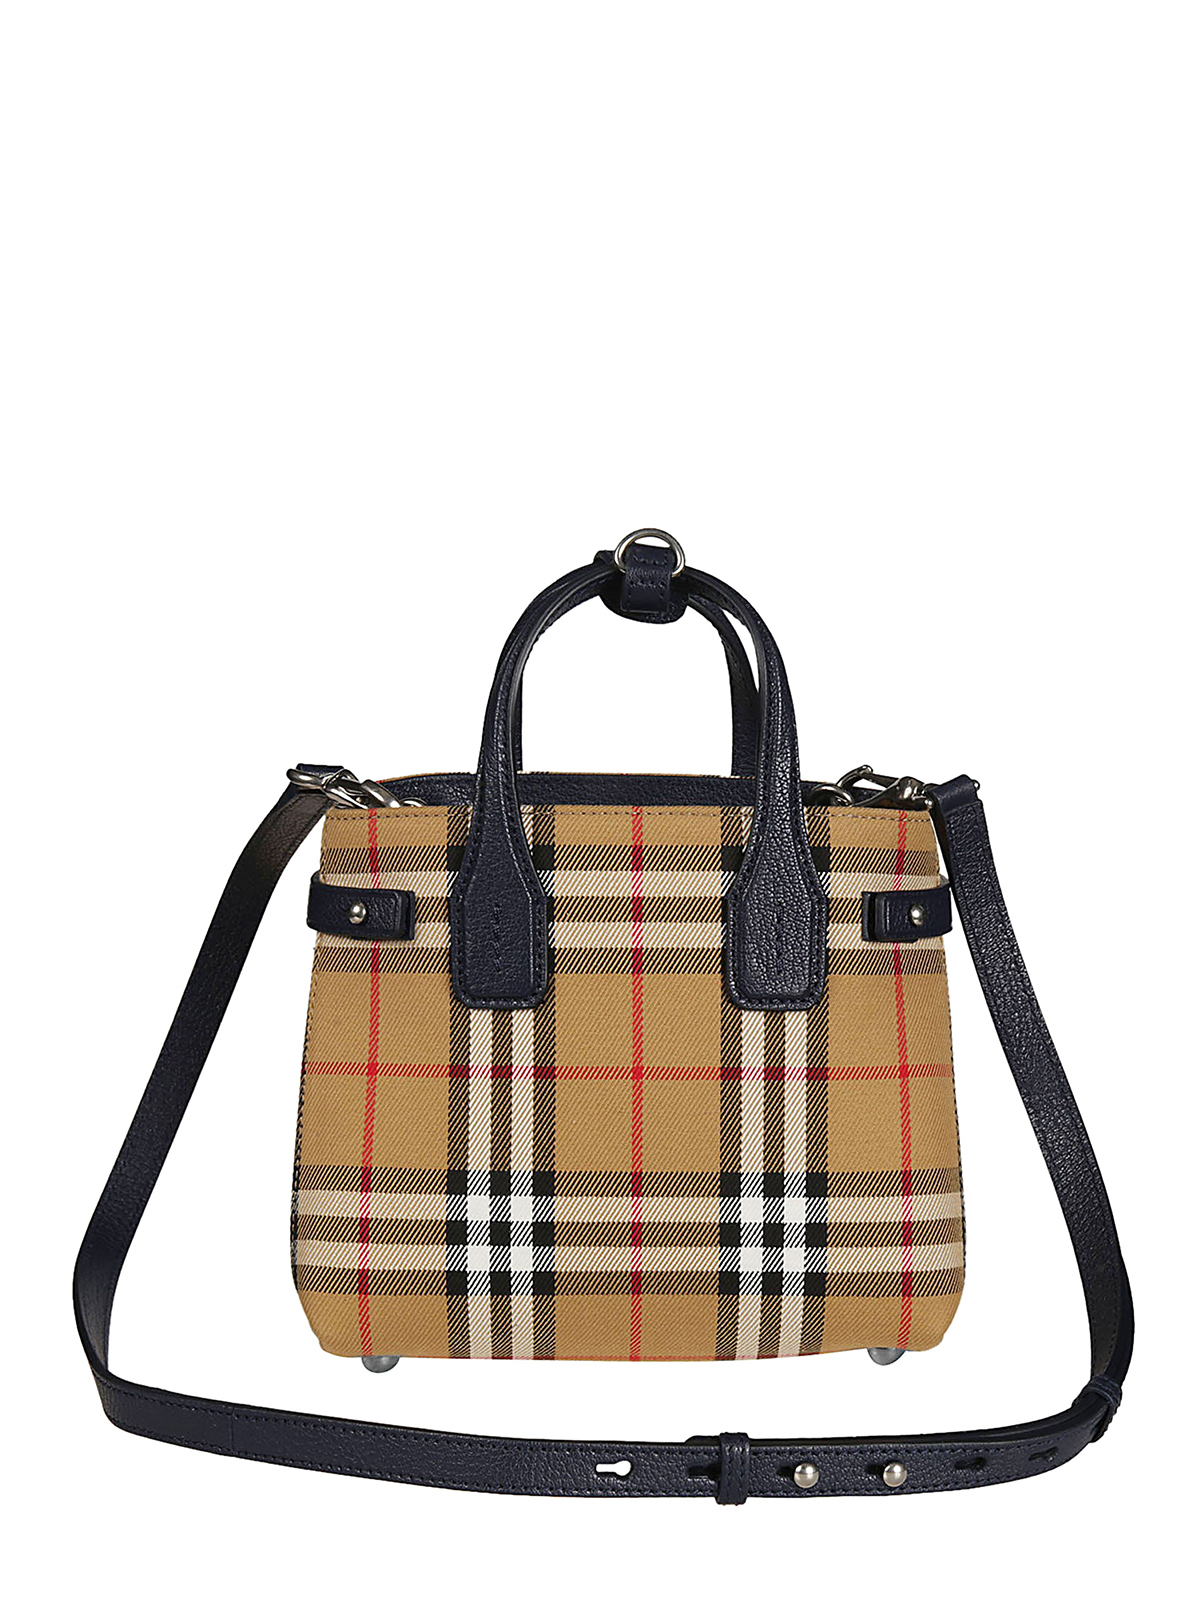 Burberry Vintage Check And Leather Baby Banner Bag Cross Body Bags 4078508